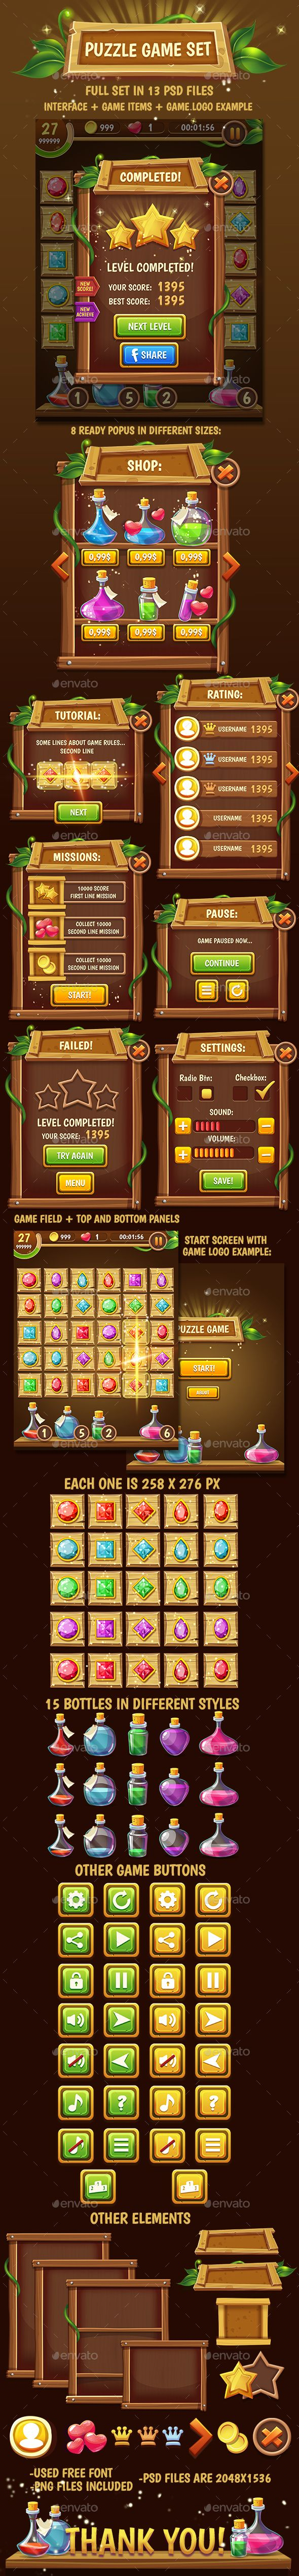 Big Wooden Game Puzzle Set with GUI — Photoshop PSD #fantasy #assets • Download ➝ https://graphicriver.net/item/big-wooden-game-puzzle-set-with-gui/15801871?ref=pxcr